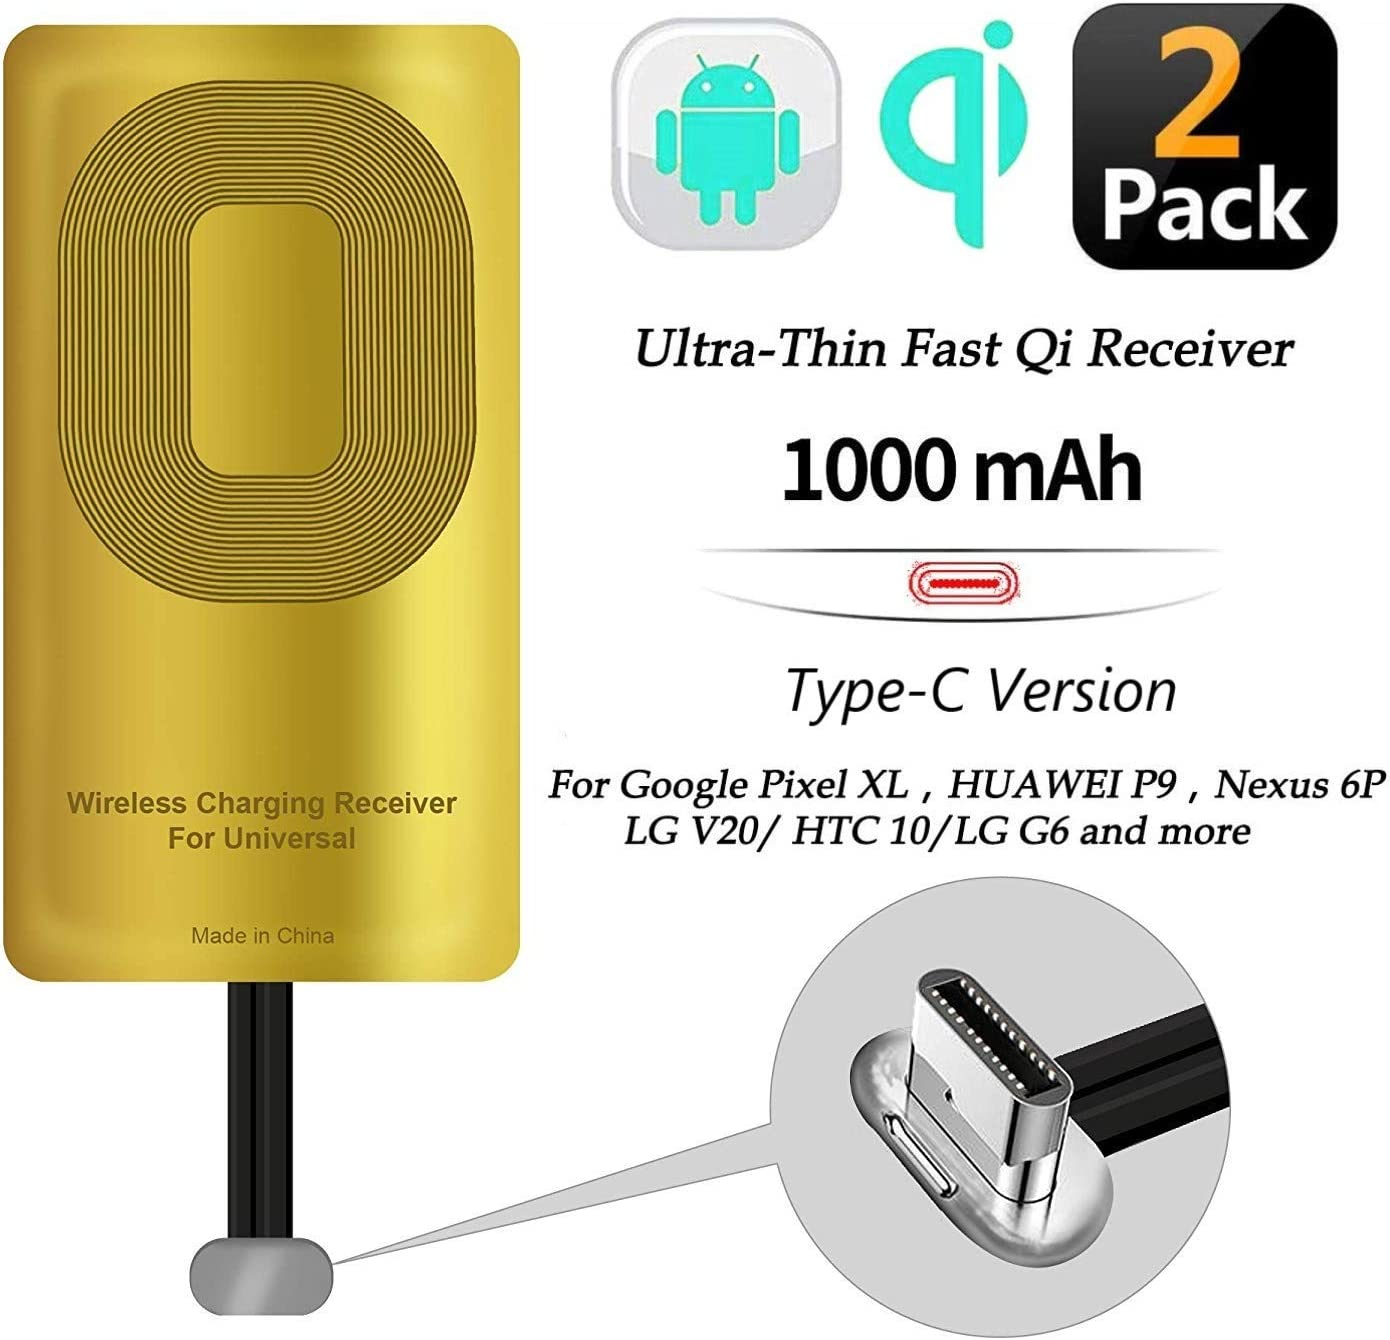 2 Pcs Fast QI Receiver Type C for Google Pixel 2 XL/-LG V20/G5-HTC 10–Google Nexus 6P-Huawei Mate 9/10/11 Ultra-Slim 5w 1000mAh Wireless Charging Receiver Adapter Compatible All Wireless Charger(2pcs)